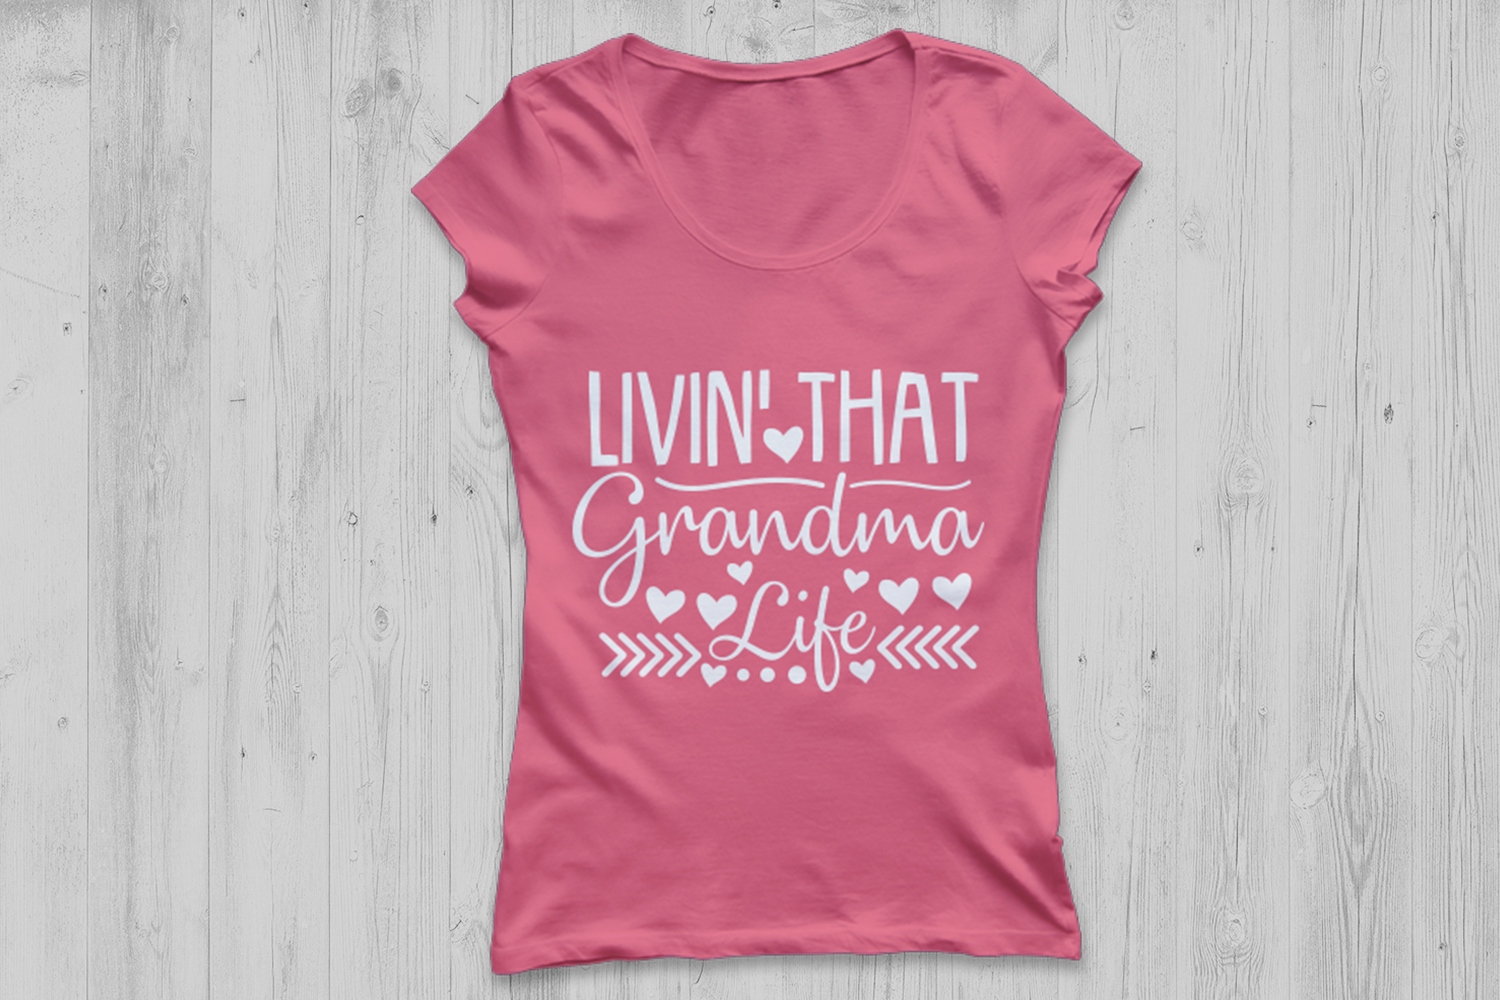 Livin That Grandma Life Svg, Mother's Day Svg, Grandma Svg. example image 2